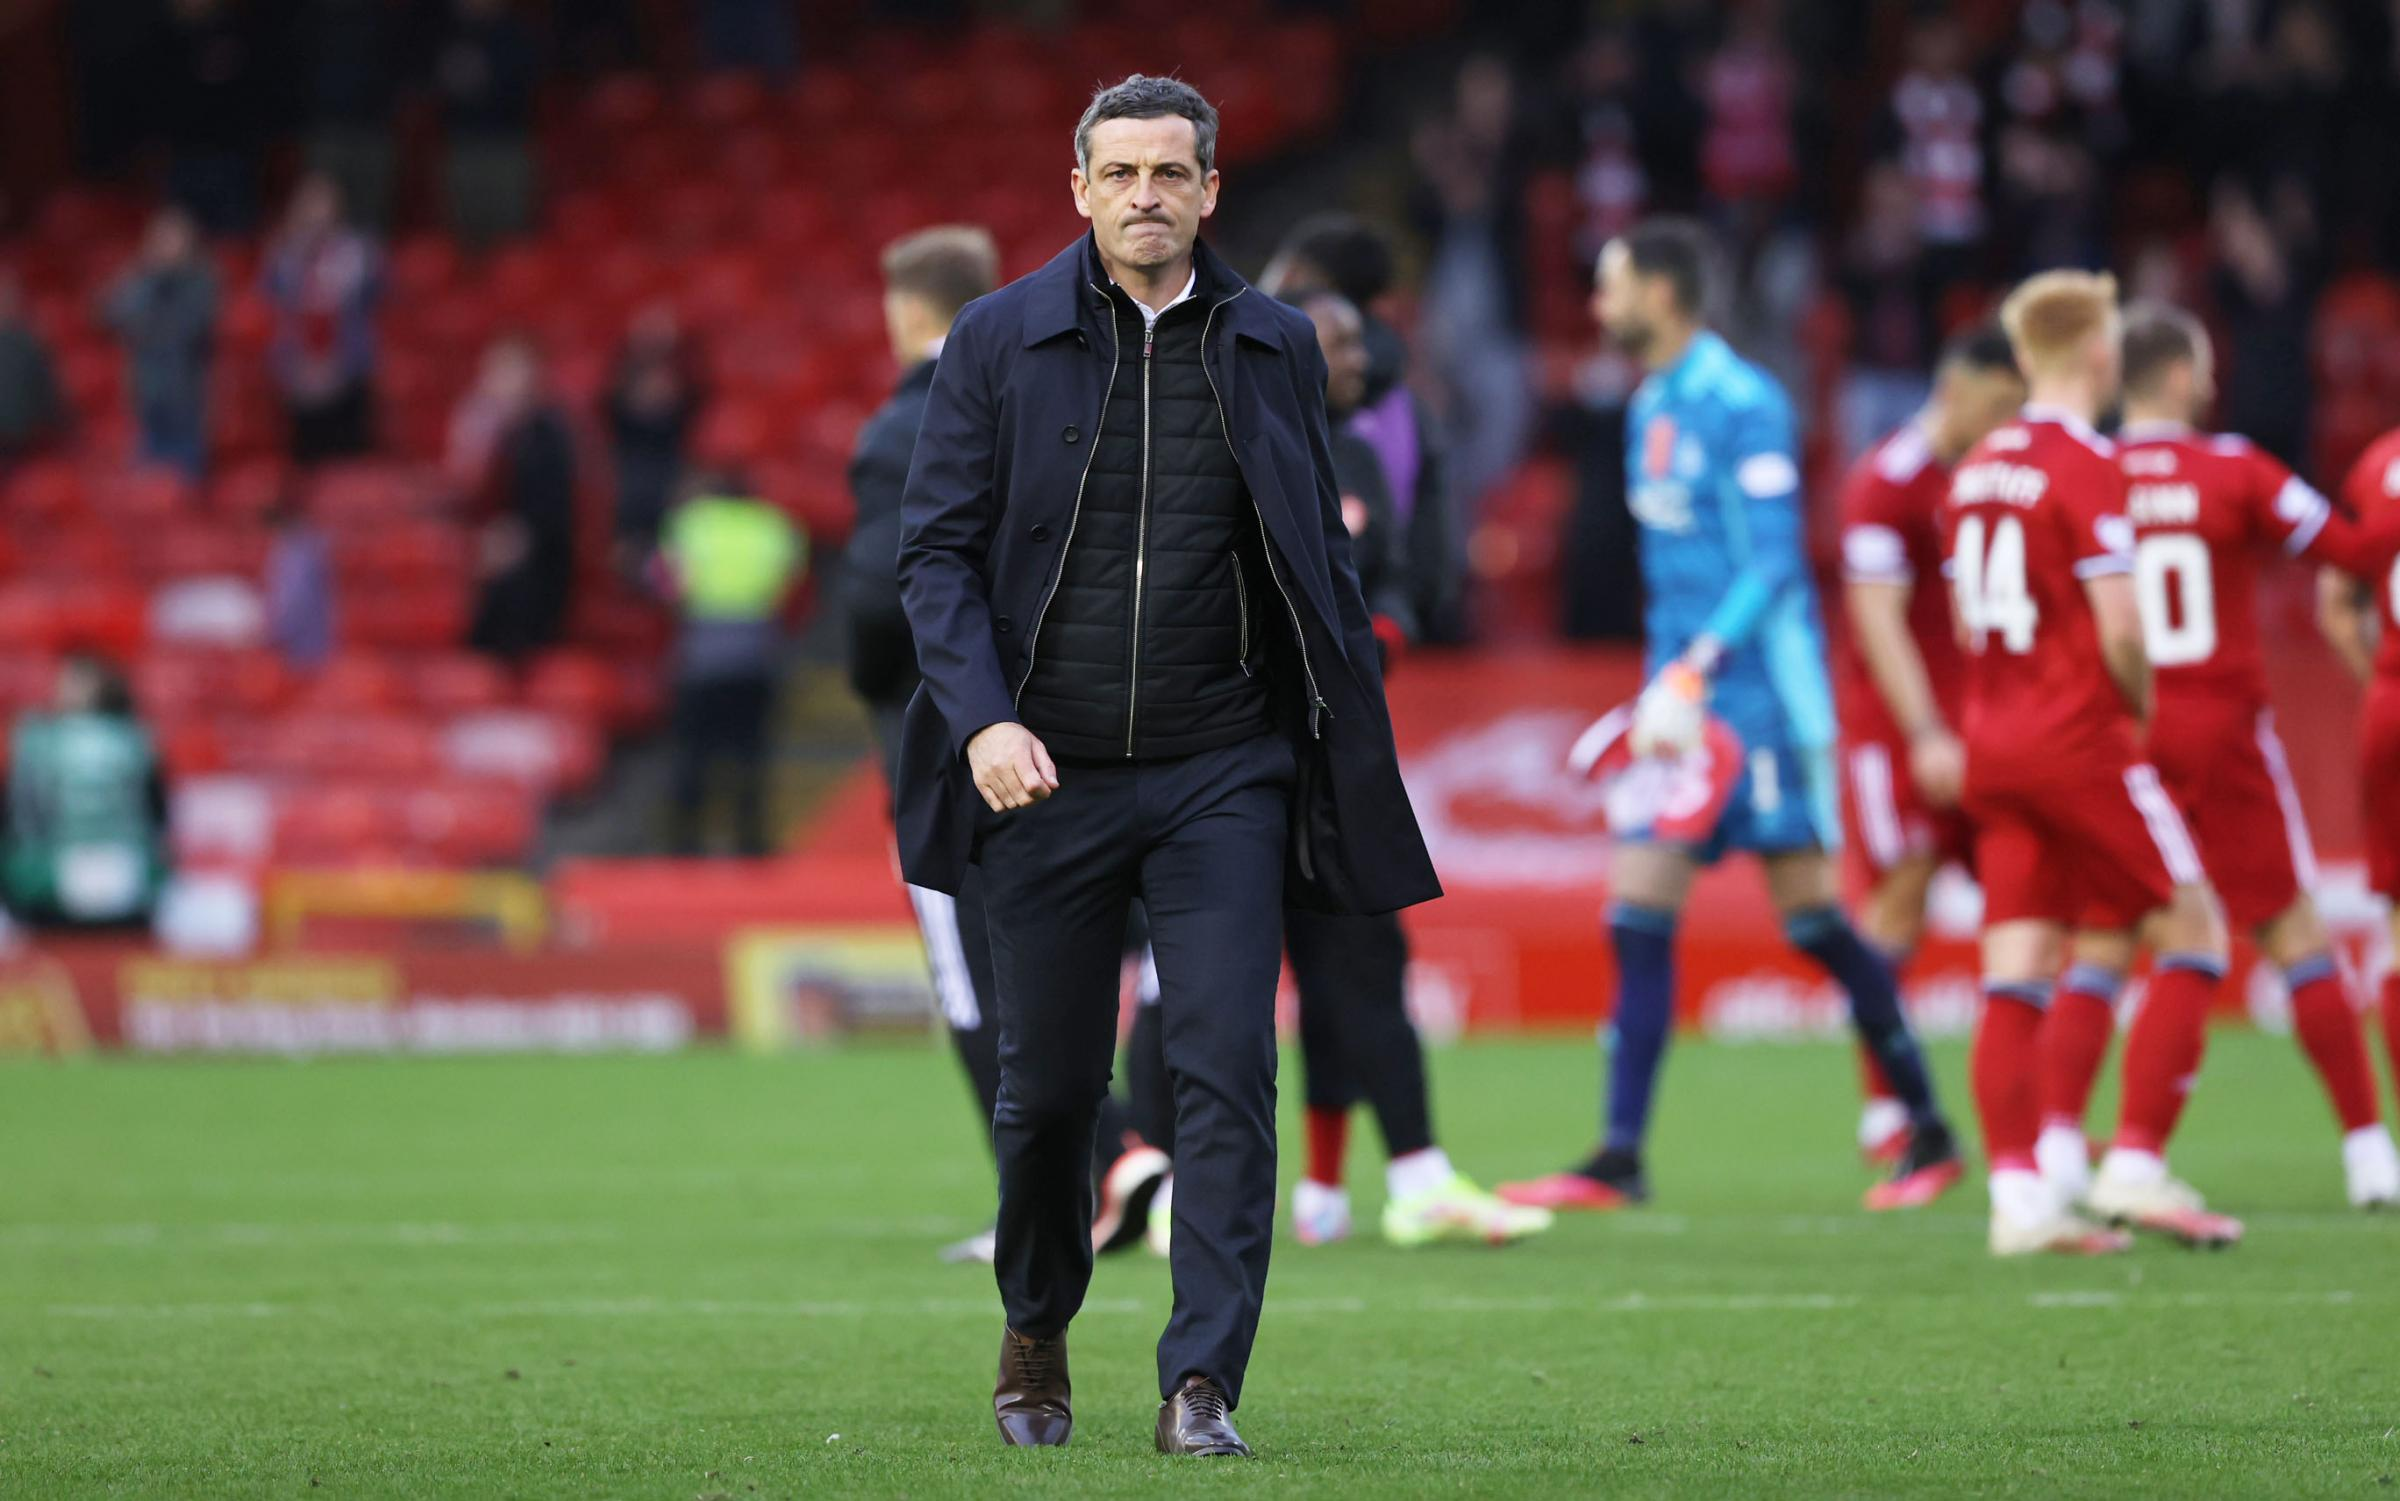 Hibs boss Jack Ross instigated 'home truths and harsh words' chat after loss to Aberdeen